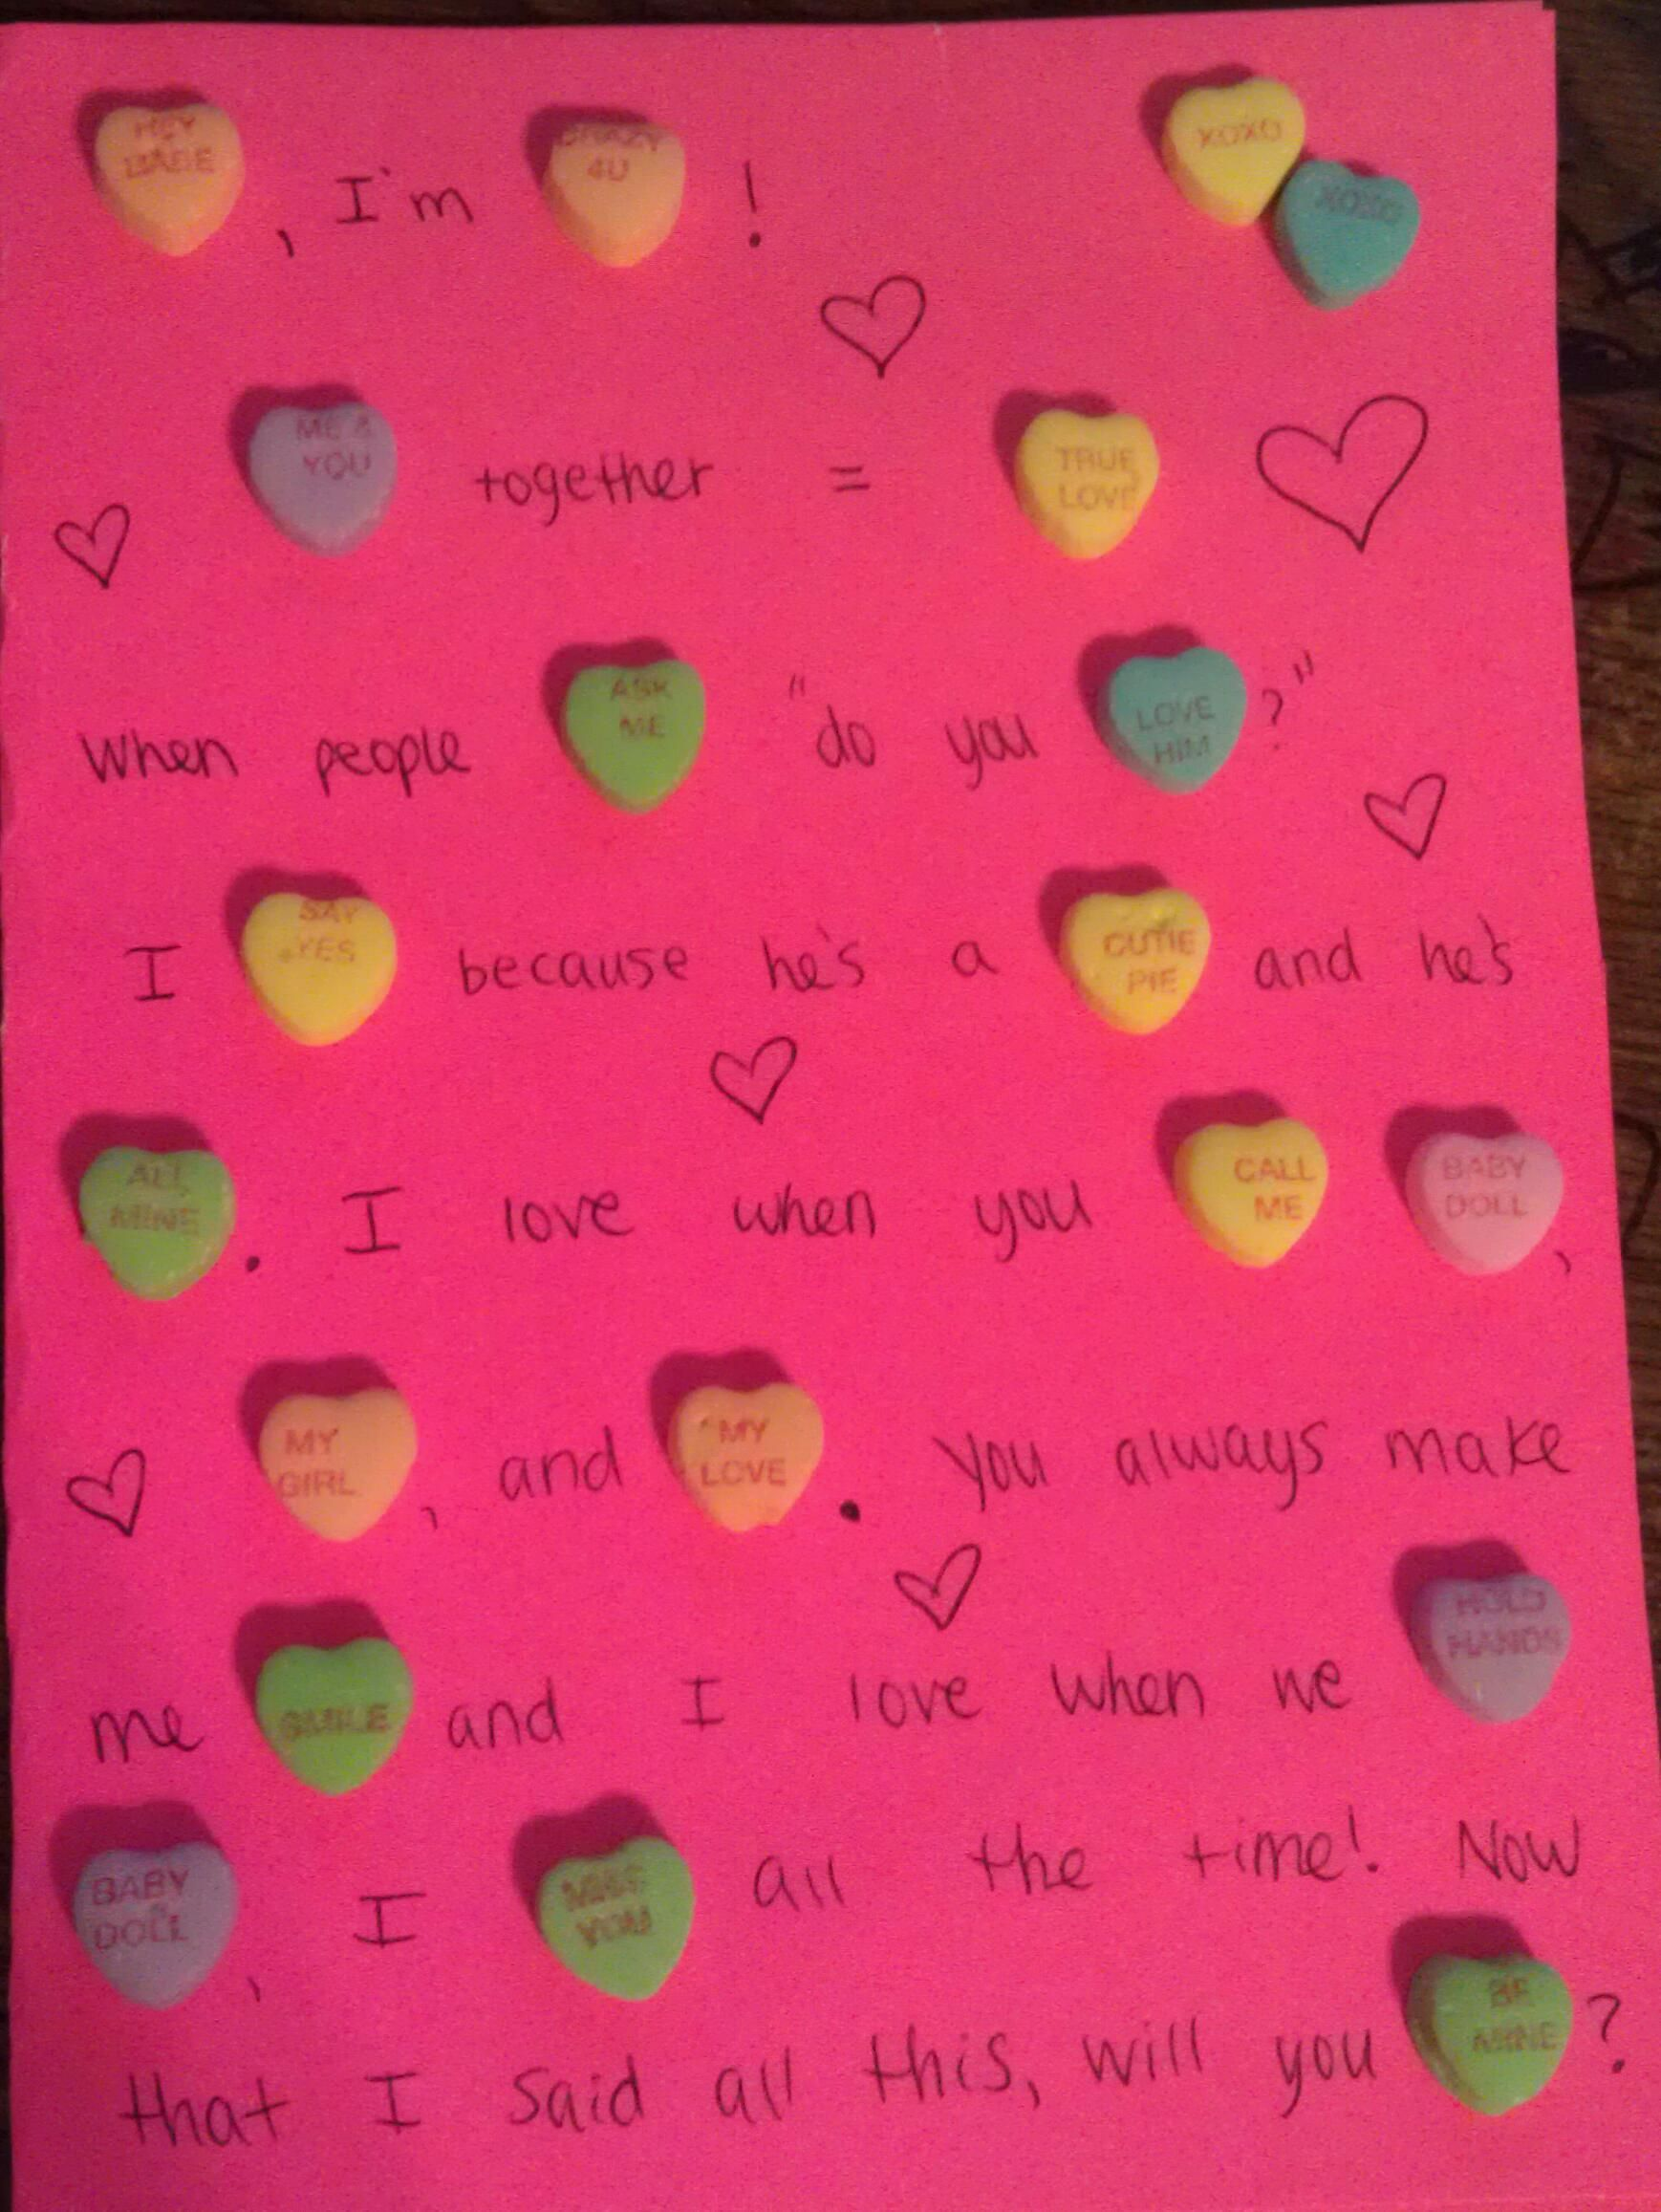 Homemade Valentines Day Card For My Boyfriend) Uploaded With Pinterest